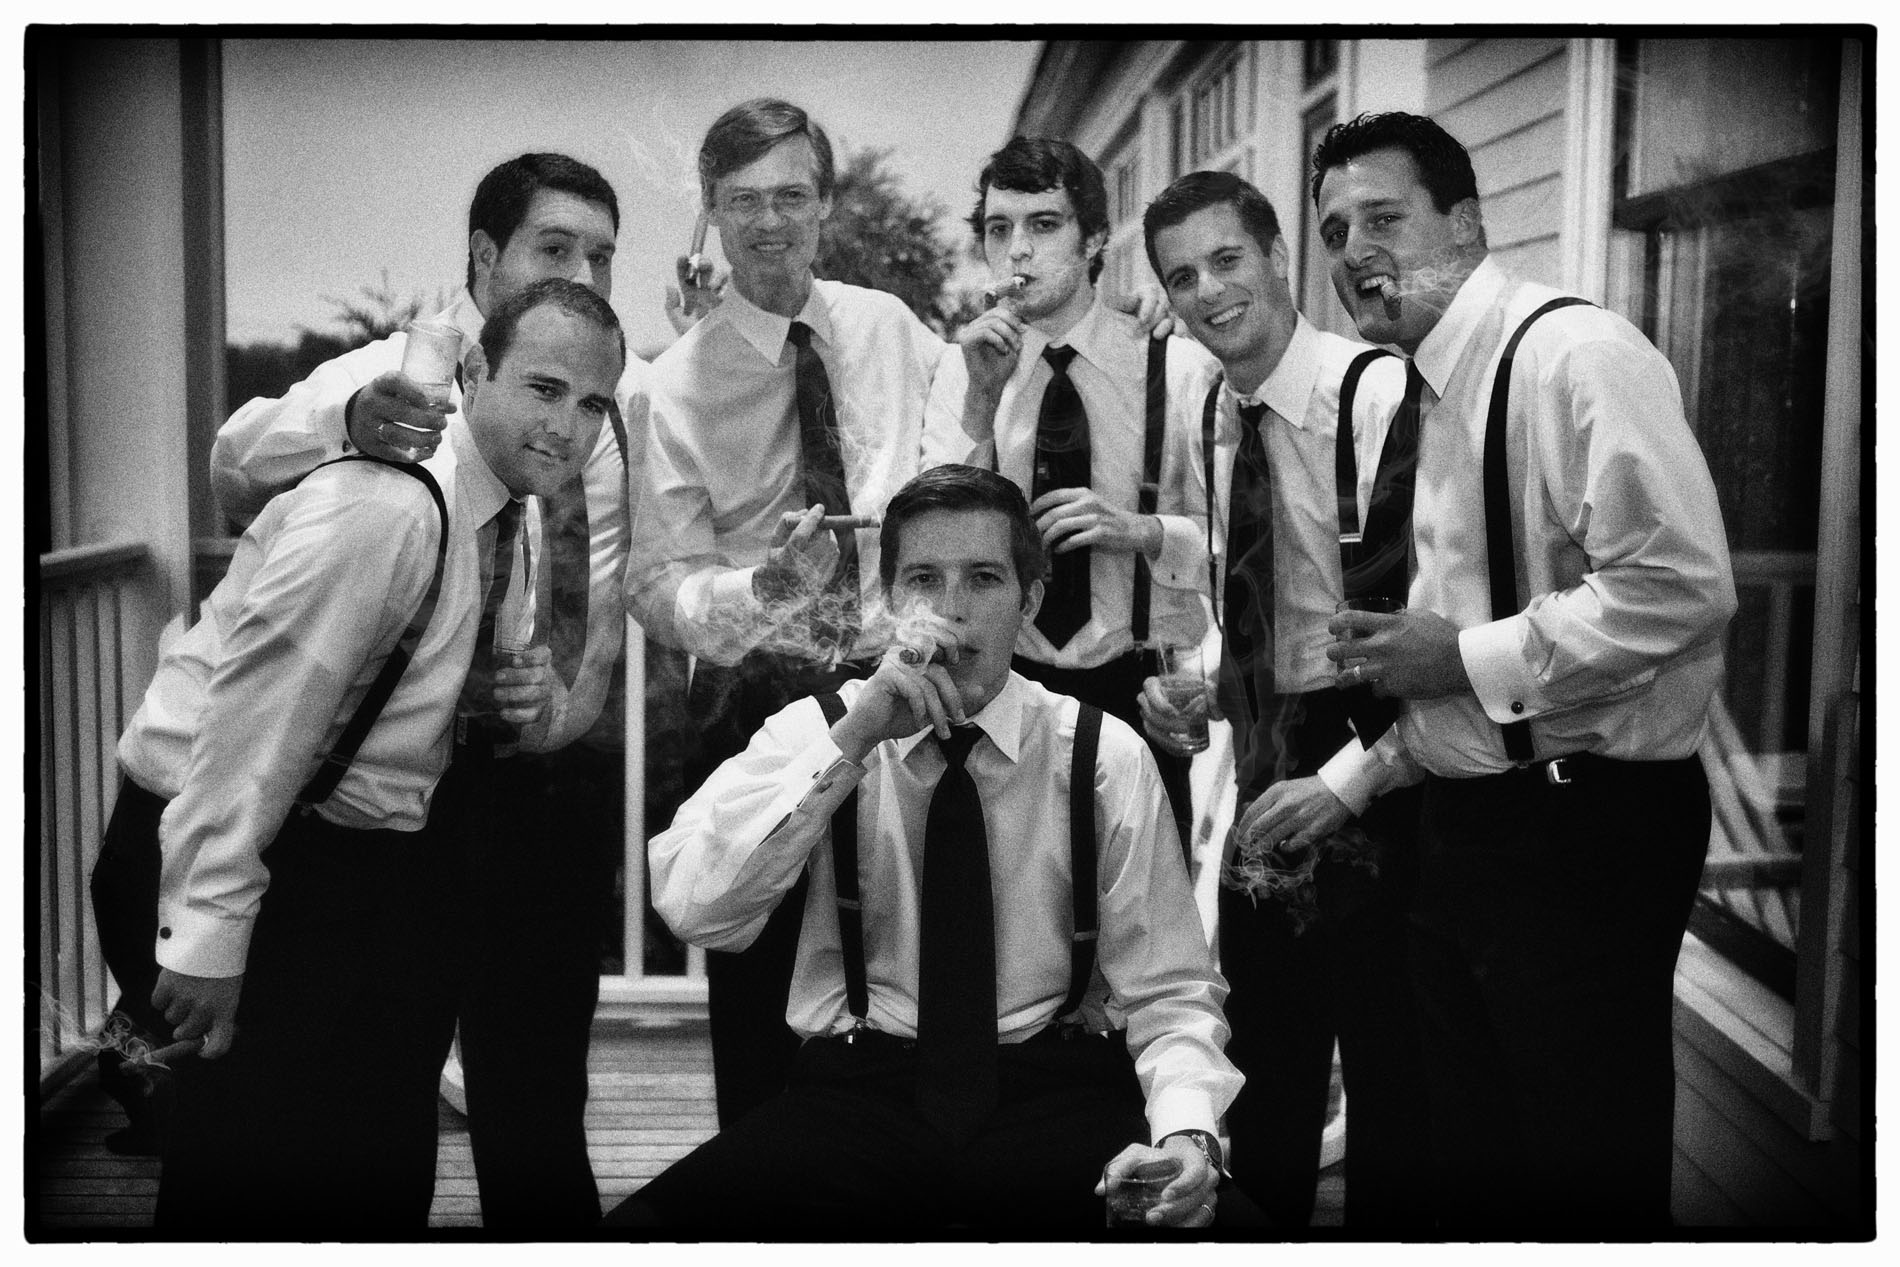 Favorite Wedding Pictures from Wentworth - men smoking cigars